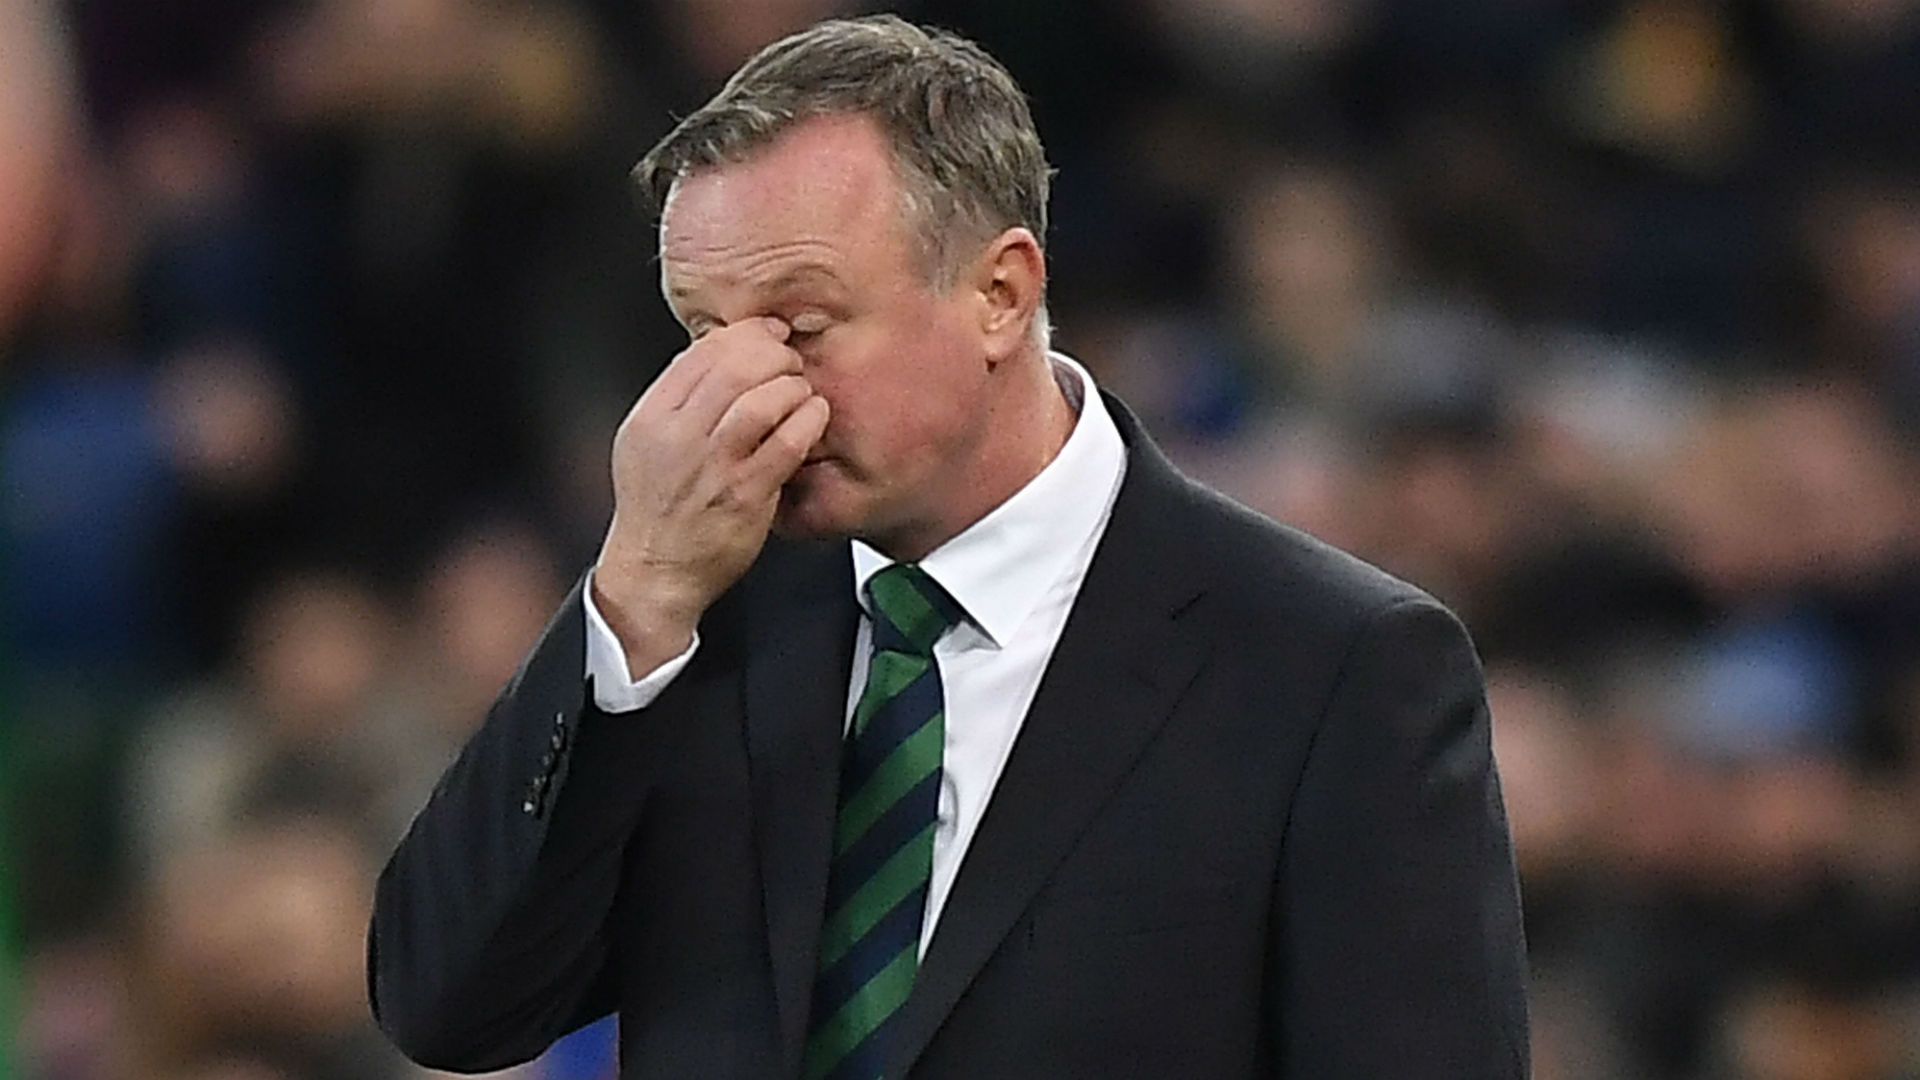 Michael O'Neill leaves Northern Ireland after eight years as manager